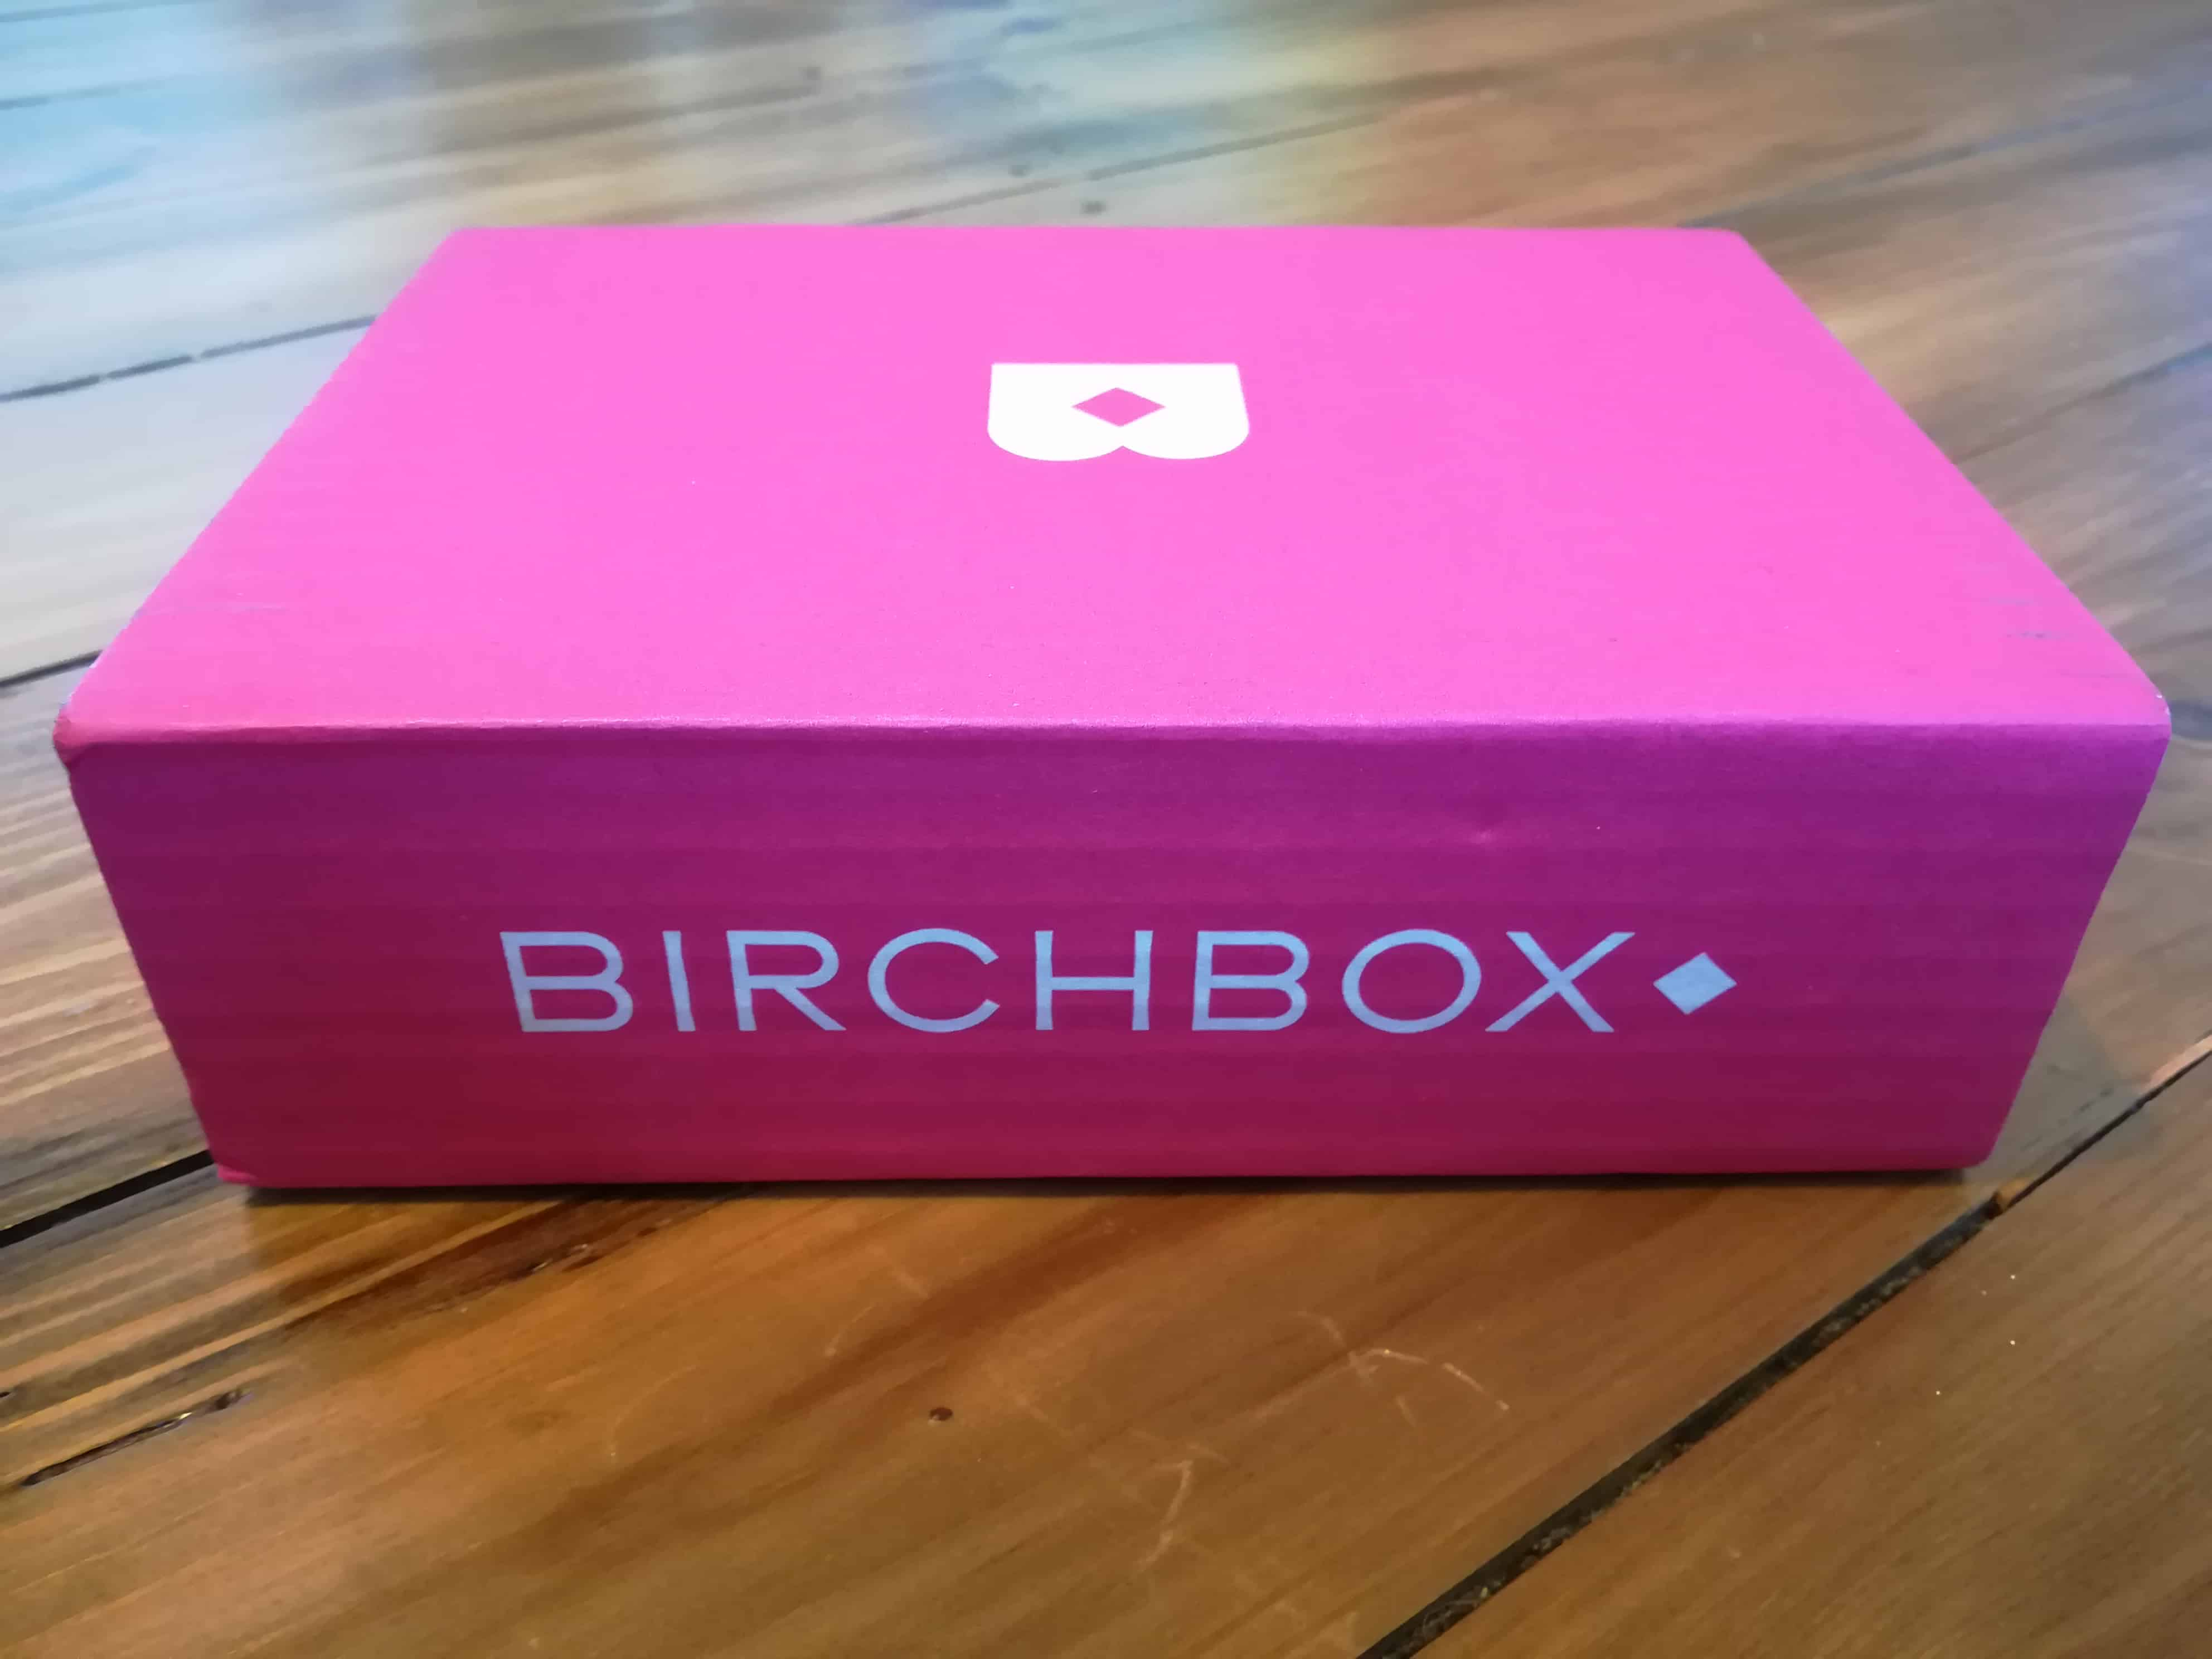 Birchbox Uk Is The S No 1 Beauty Box Delivering 5 Personalised Products Each Month To Suit Your Skin Hair And Style When Subscribing You Create A